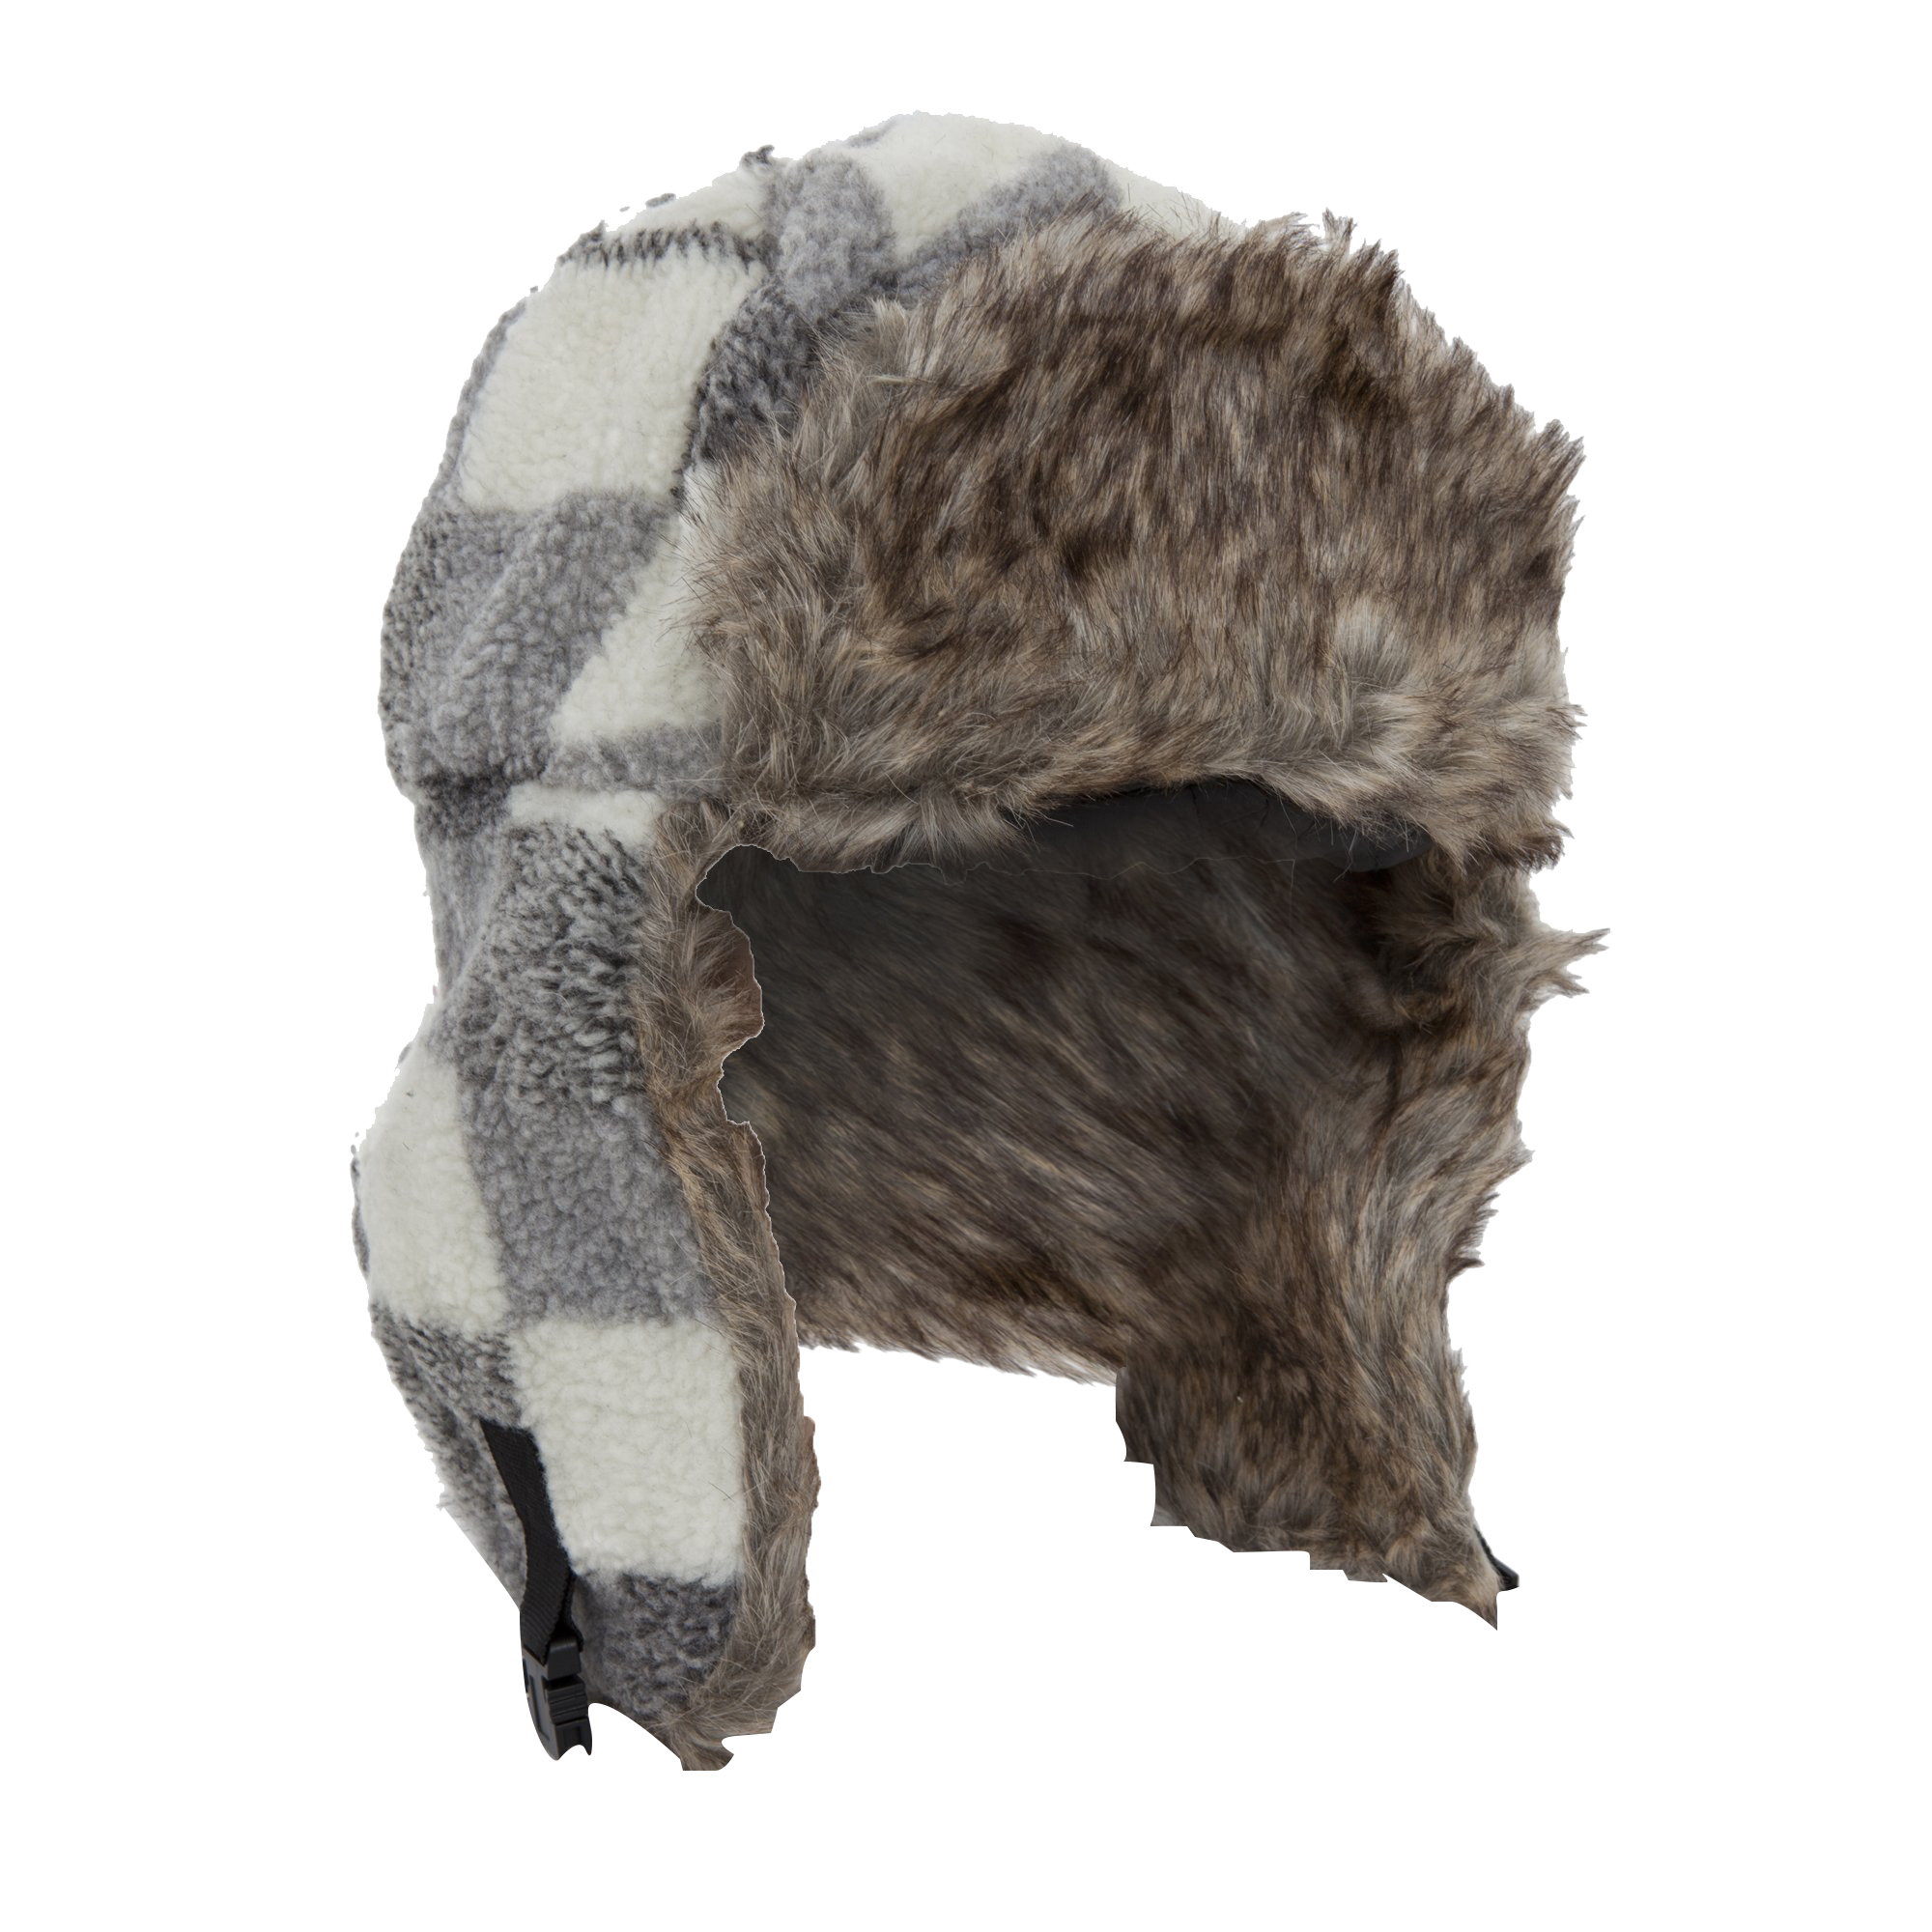 New Ultra Soft Faux Fake Fur Wool blend Tweed Trooper Trapper Pilot Aviator Hunter Ski Winter Skate Hat Cap Ultra Luxurious soft faux fur, feel the difference. Luxuriously soft, super warm but, light weight, not too heavy that you will sweat in them.